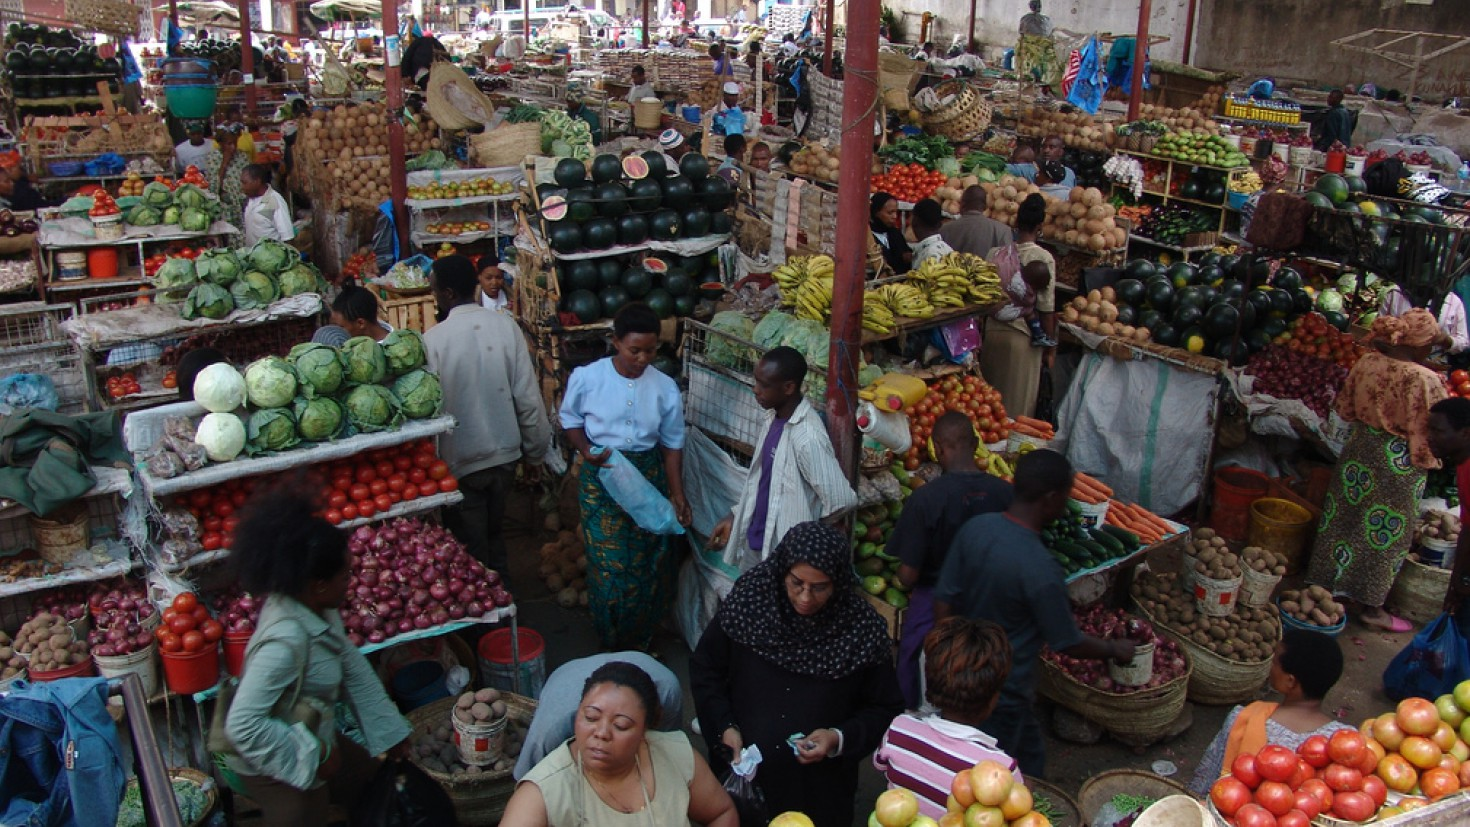 market in Arusha, Tanzania, 2007 (foto: HANSCO / Flickr / creative commons)